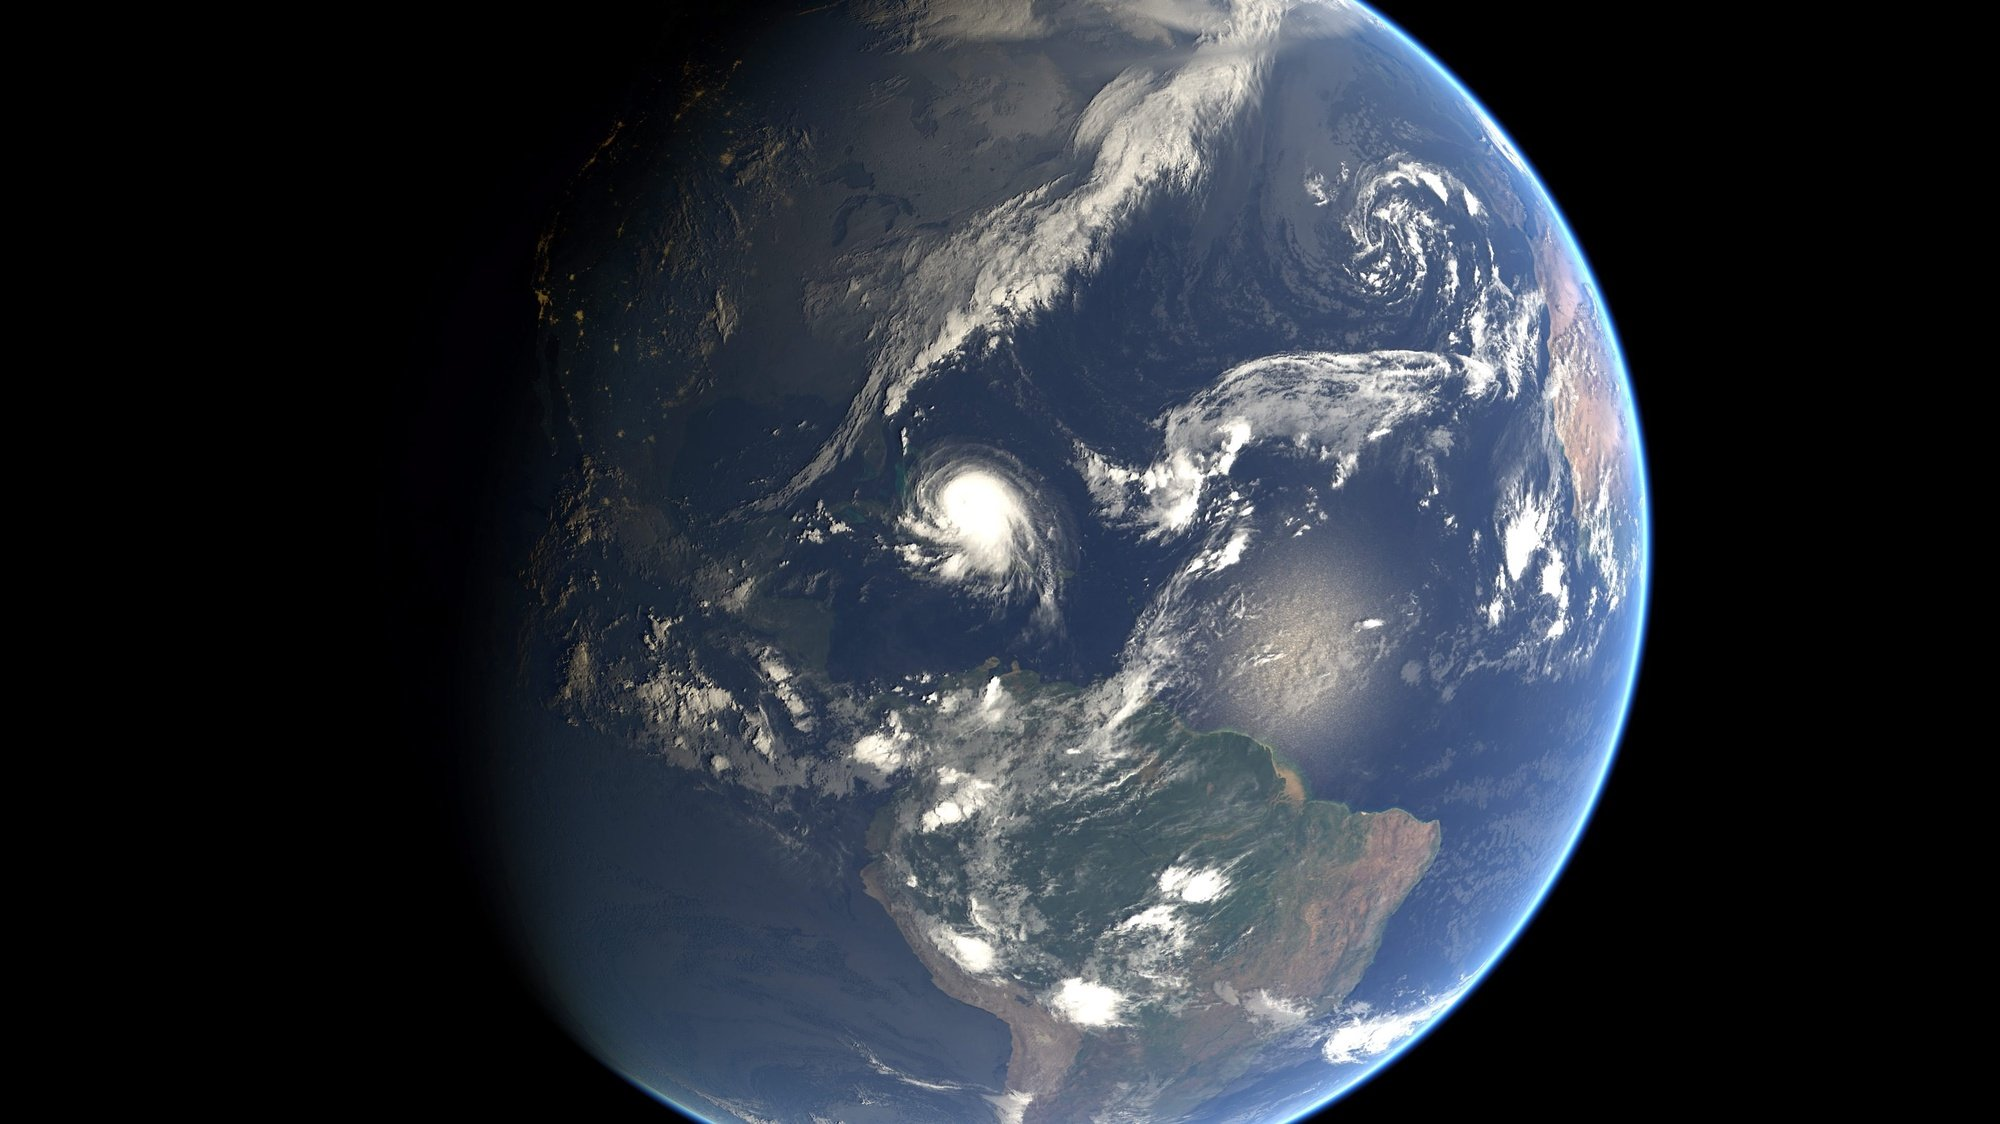 epa04958976 A handout photo provided by EUMETSAT on 01 Octover 2015 of category 3 Hurricane Joaquin (C) taken at 12:00 UTC on Thursday, 01 October 2015 by an Eumetsat satellite. Hurricane Joaquin was packing sustained winds of 195 kilometres per hour as of 8 am (1200 GMT) on 01 October to the US National Hurricane Centre in Miami, as it threatened to change course towards the Bahamas. Joaquin, a category 3 storm situated around 120 kilometres south-west of San Salvador in the Bahamas, is currently moving west southwest at seven kilometres per hour.  EPA/EUMETSAT MANDATORY CREDIT: EUMETSAT HANDOUT EDITORIAL USE ONLY/NO SALES